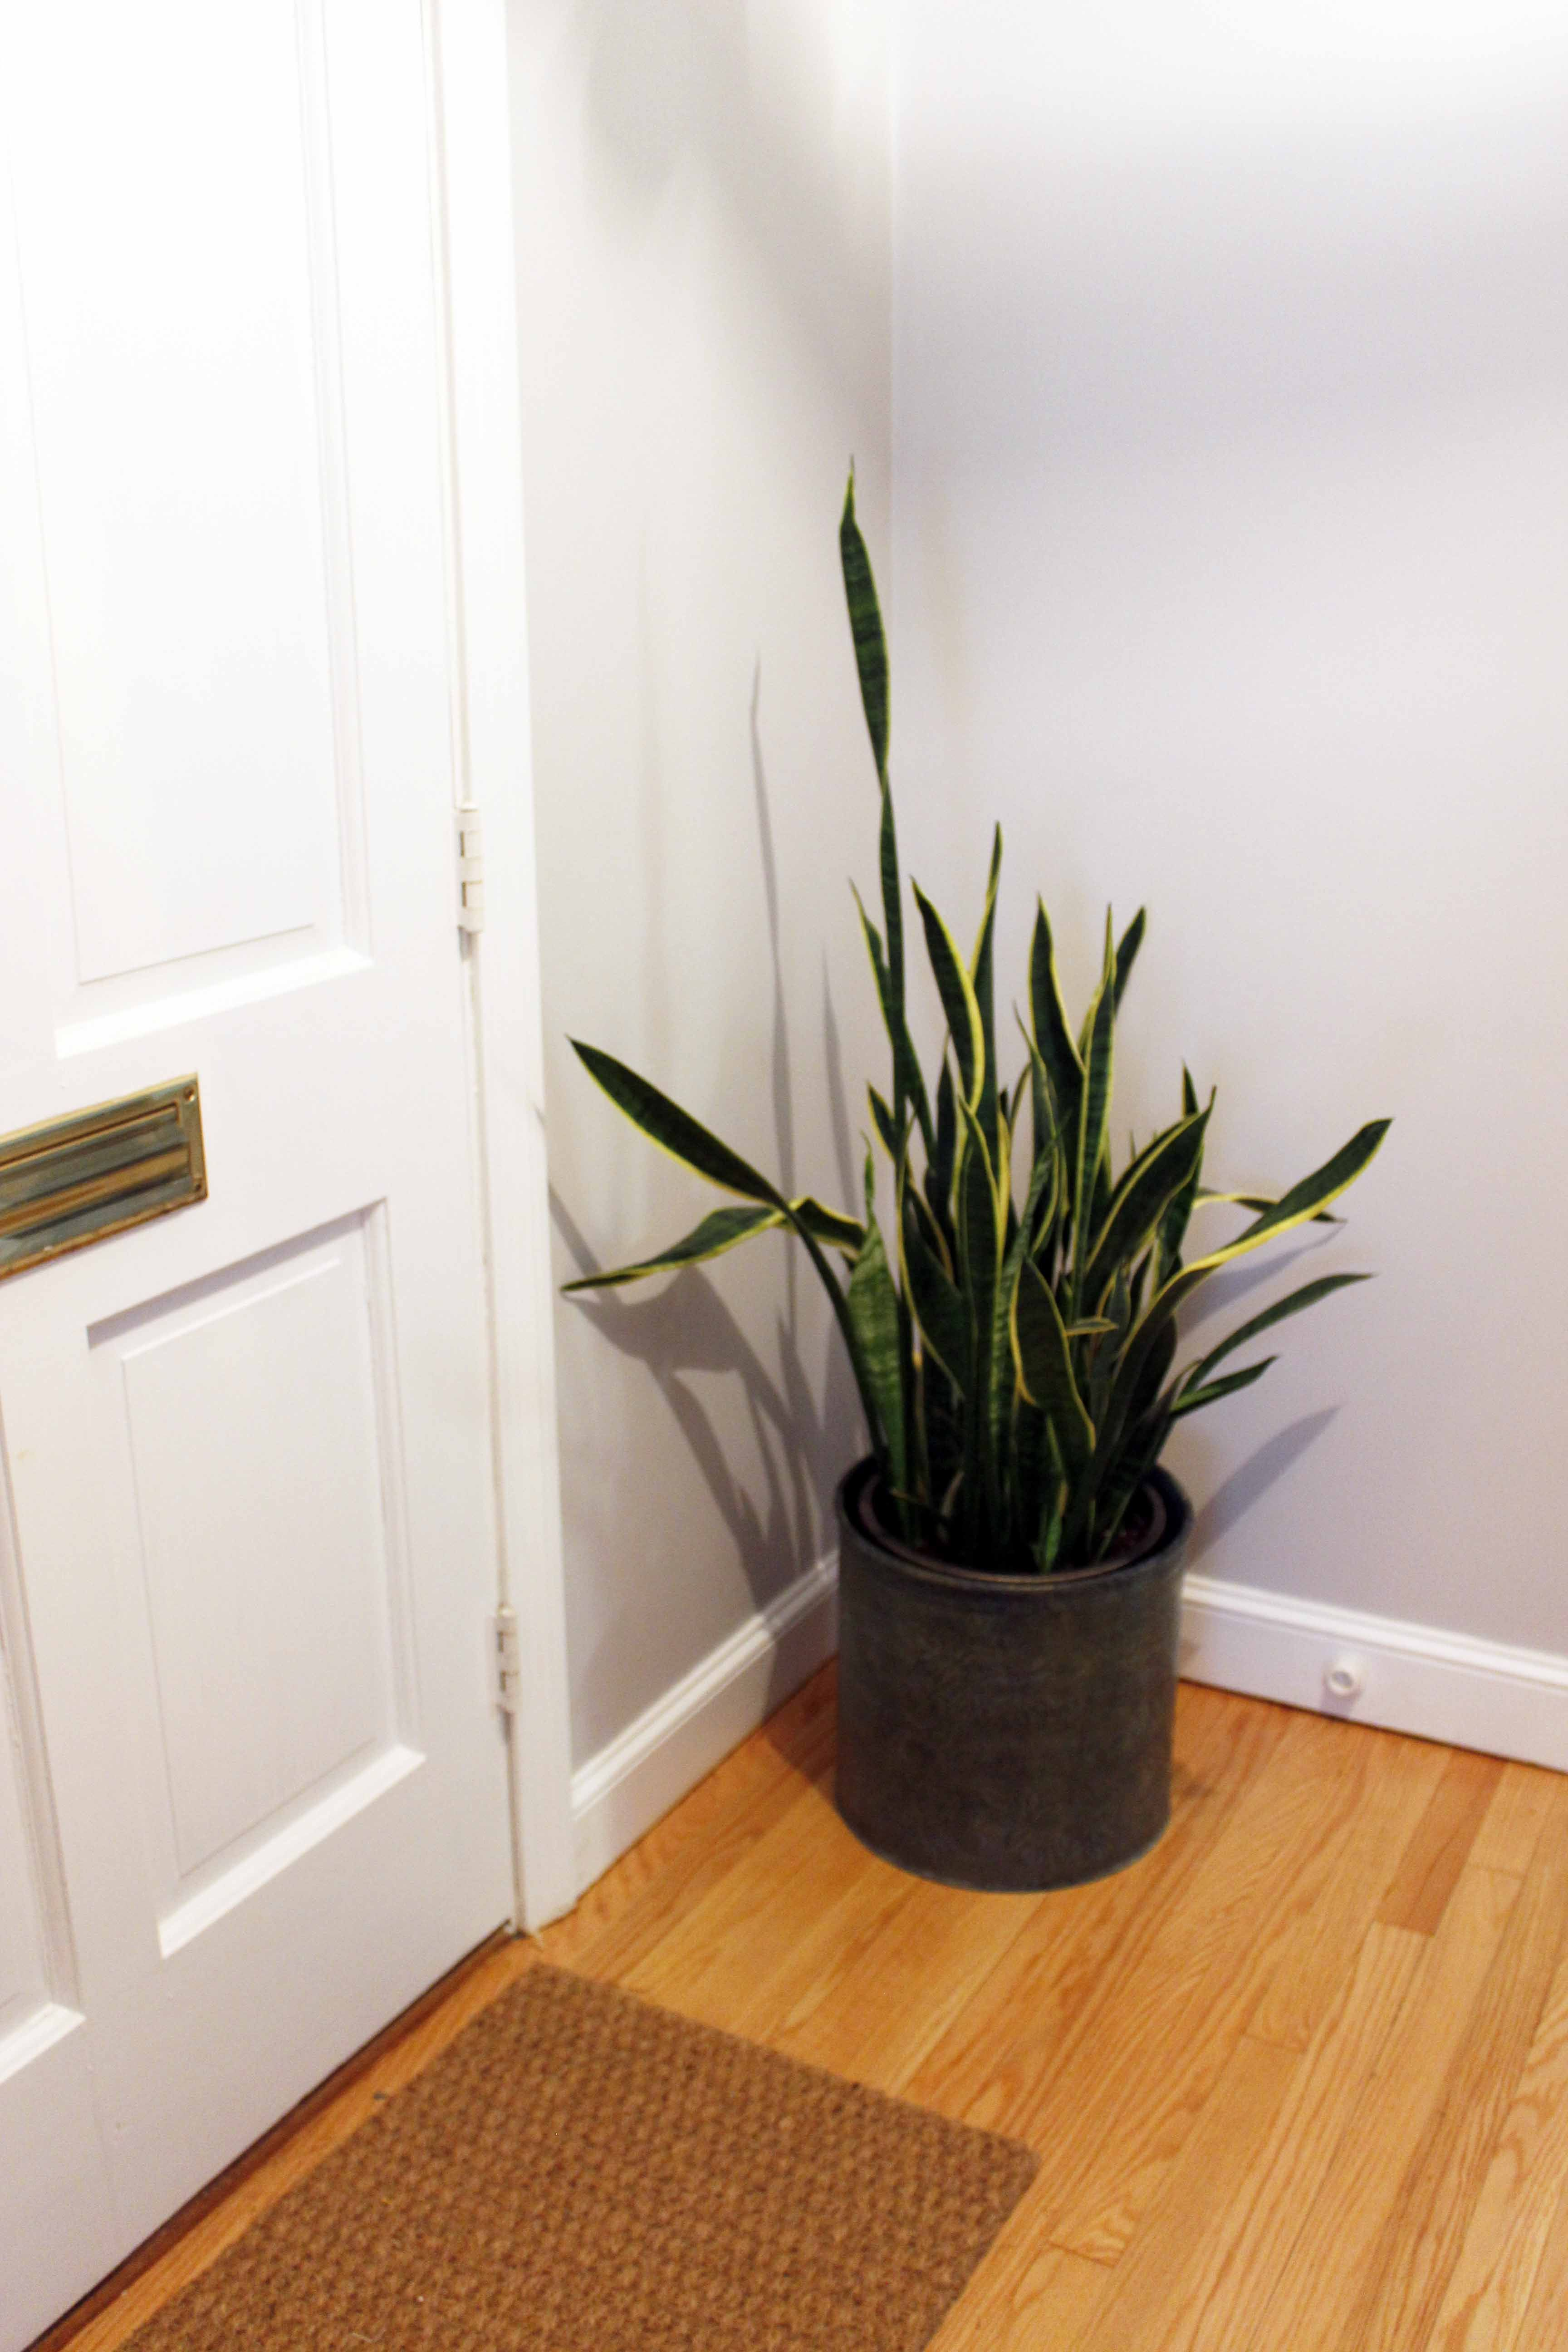 Learn how to propagate your snake plant through leaf clippings!